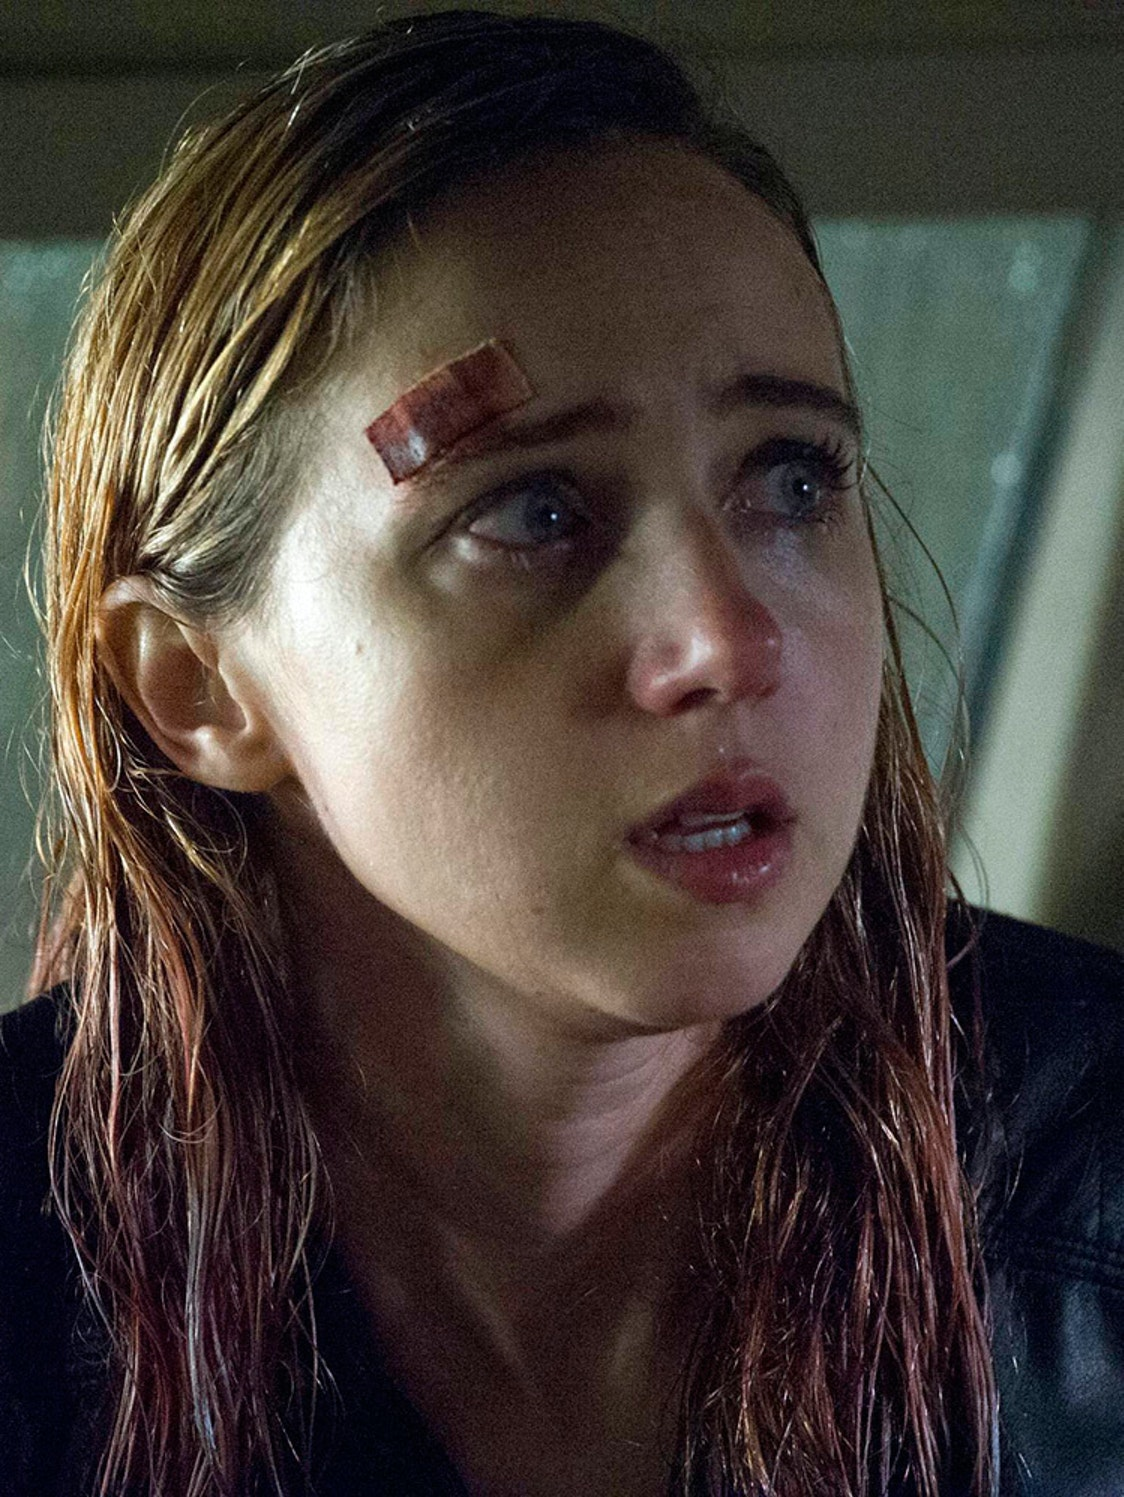 Zoe Kazan as Kathy in A24's 'The Monster'.